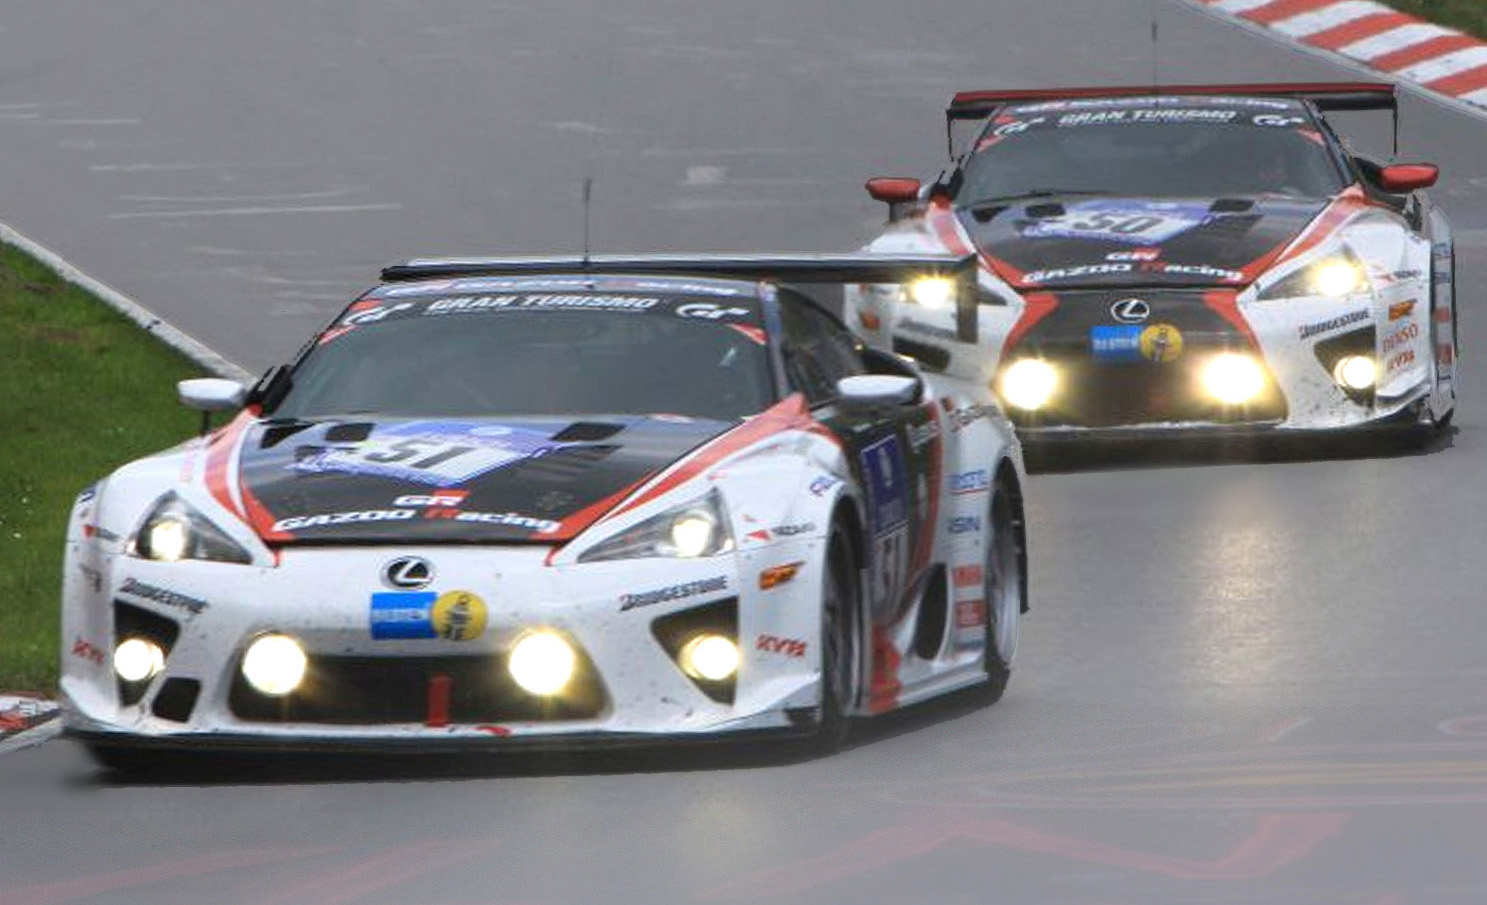 Lexus campaigned at the 24 Hours Nürburgring